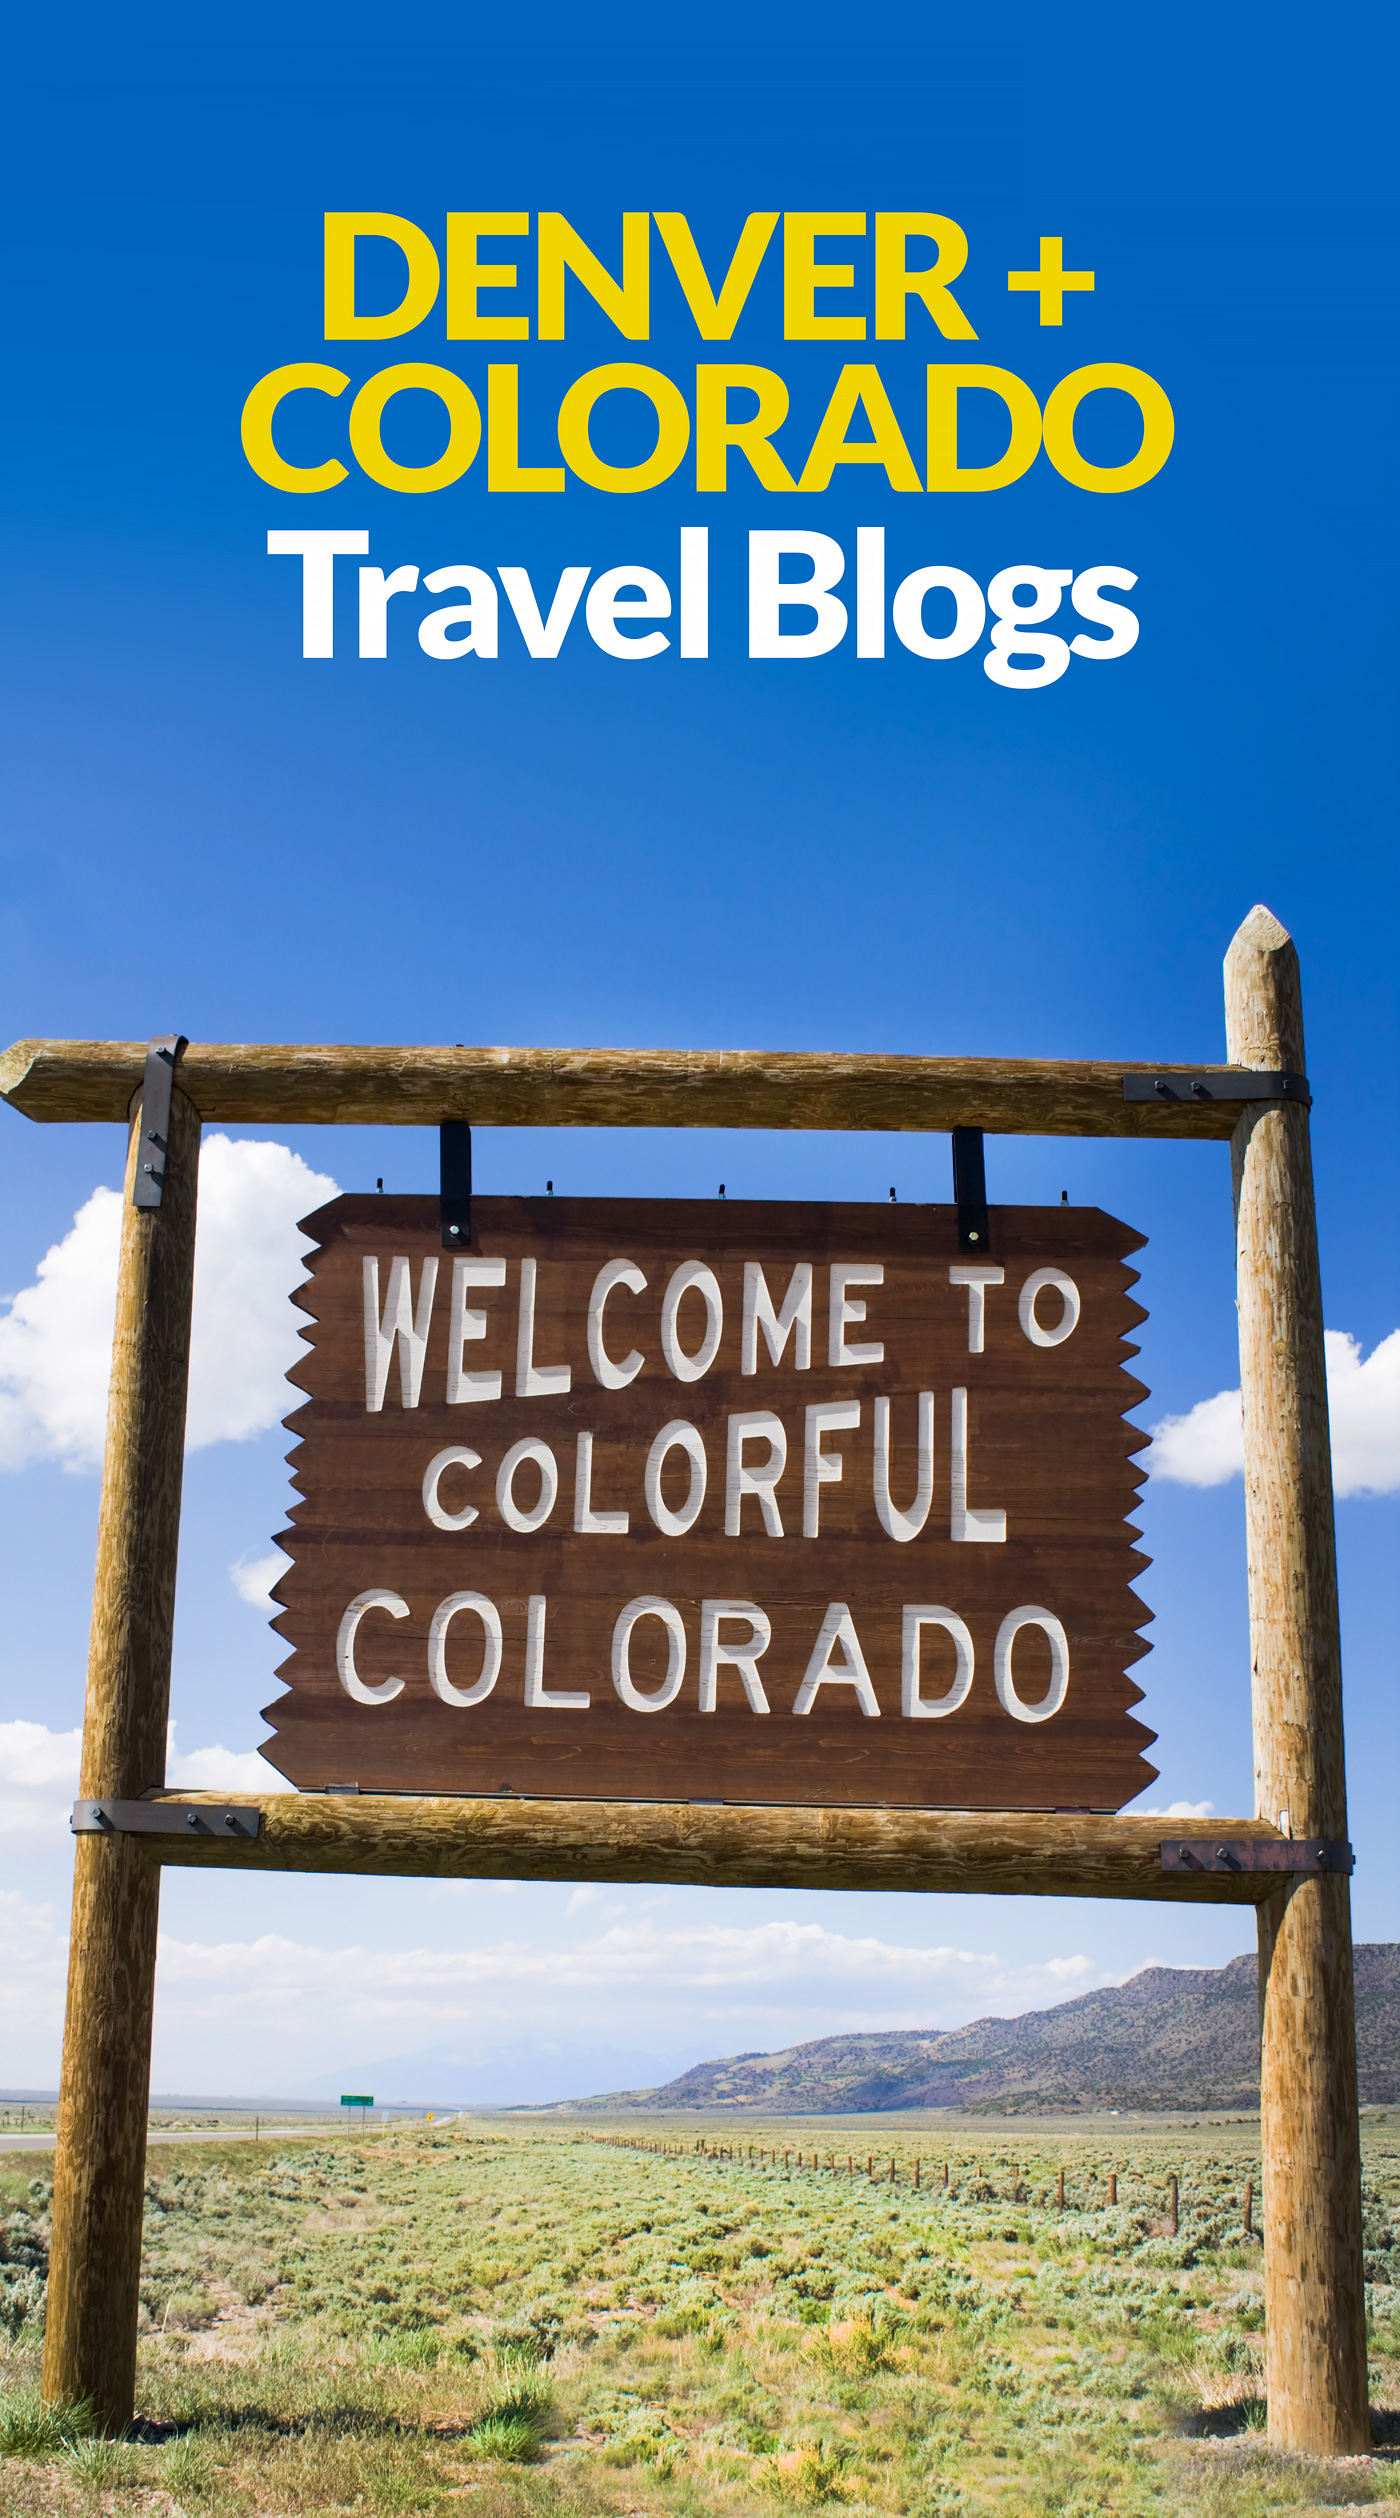 Travel Bloggers - List of Denver and Colorado Travel Blogs